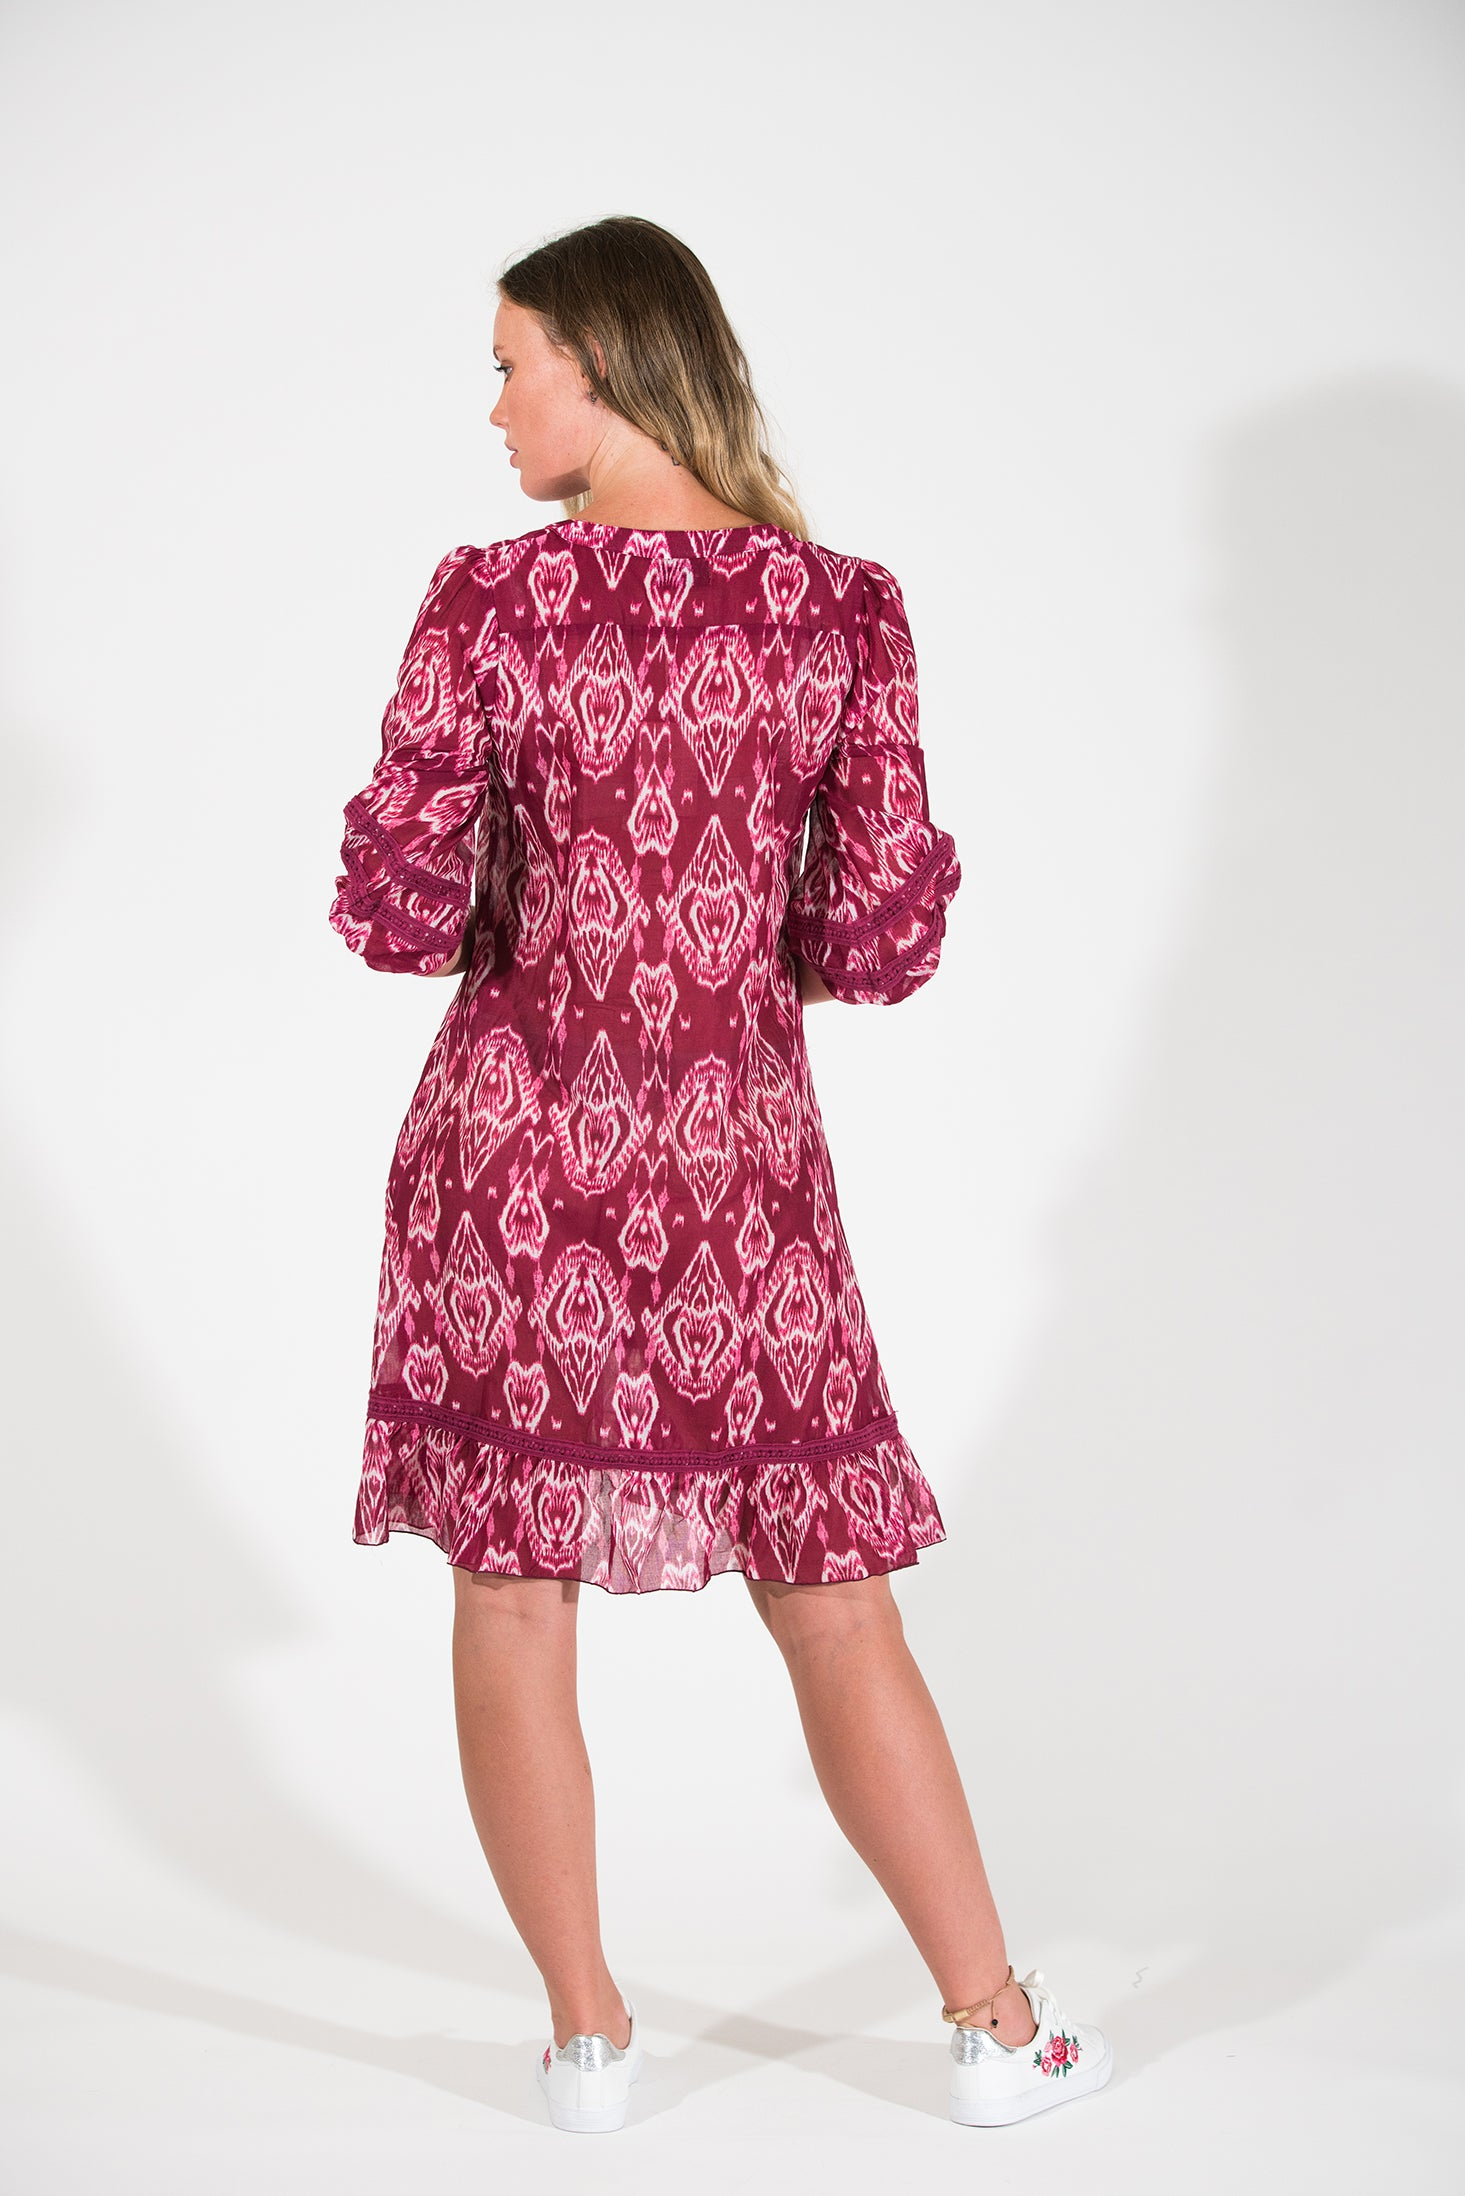 Cherry Dress - Pink Ikat